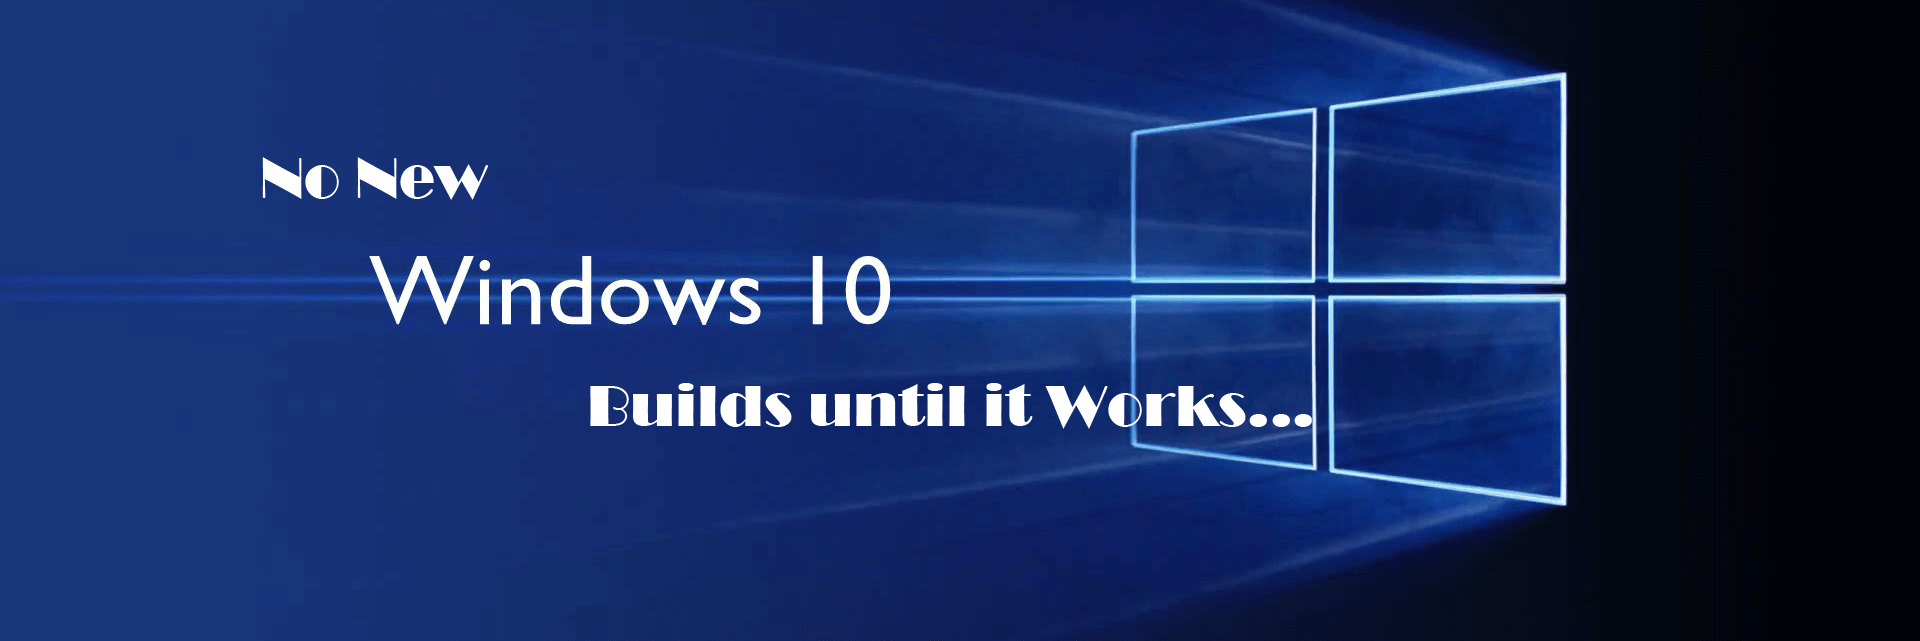 No New Windows 10 Builds until it Works...